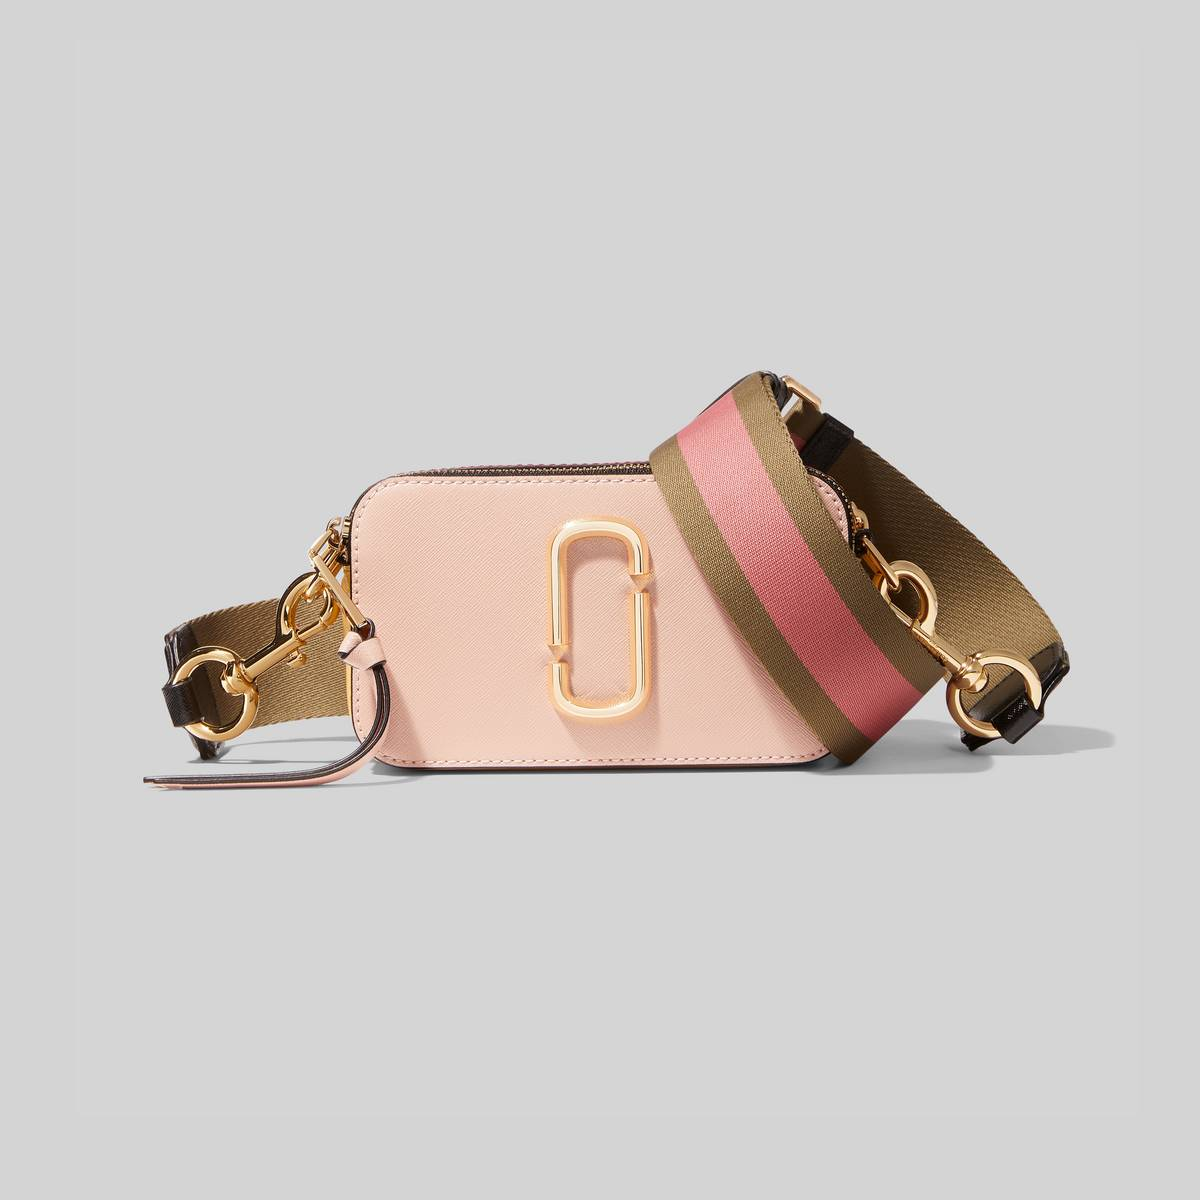 Small camera-style bag in Saffiano leather with an adjustable crossbody strap. Add a strap for a look thats uniquely yours. | MARC JACOBS Women\\'s The Snapshot Bag in New Rose Multi